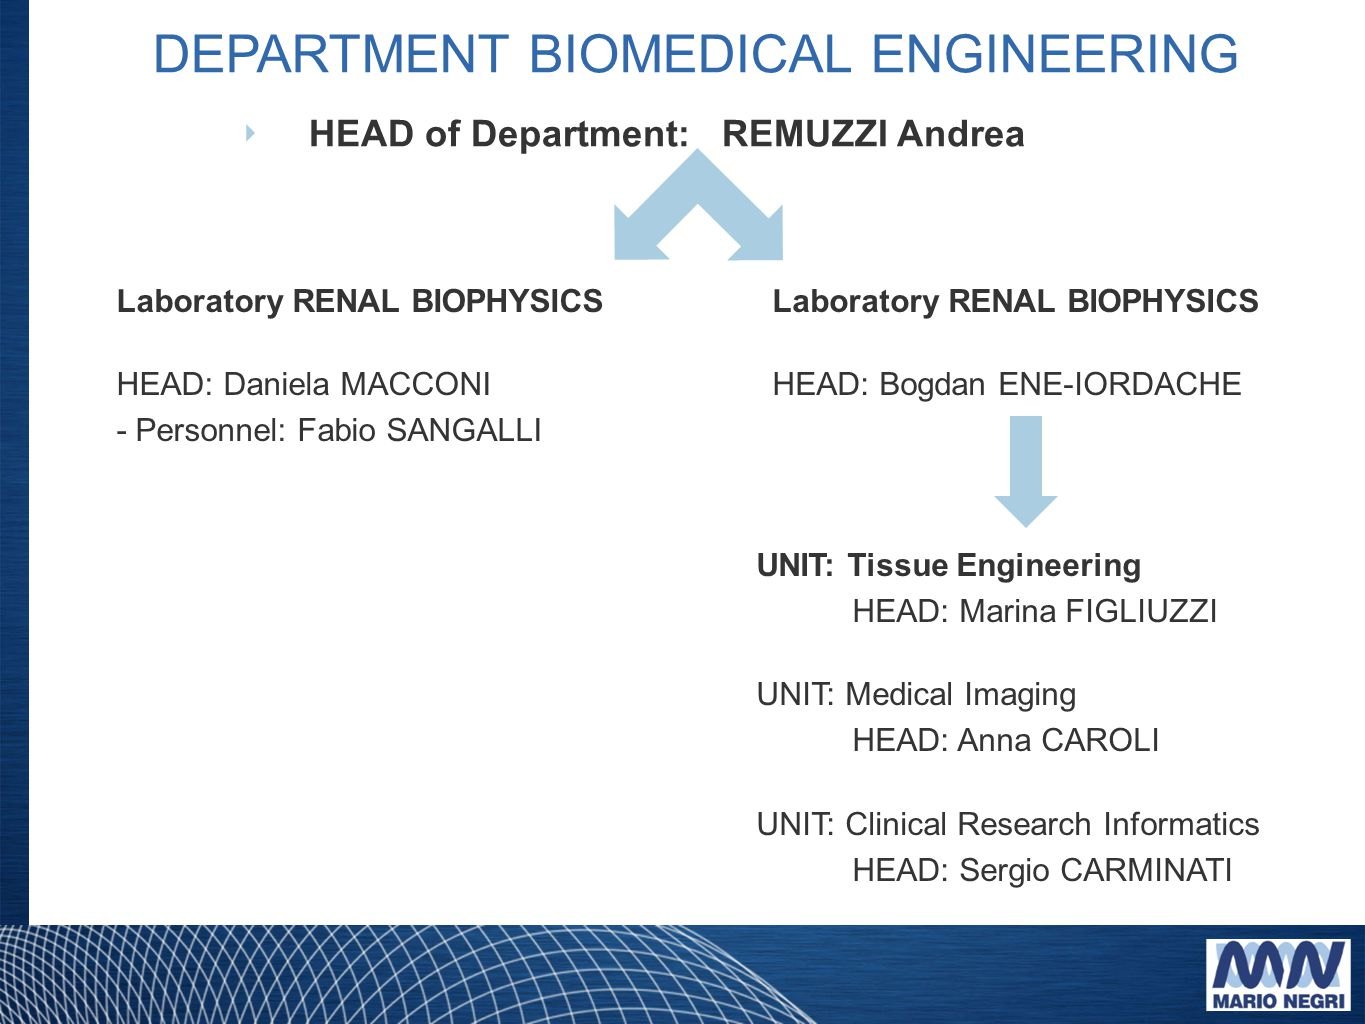 HEAD of Department: REMUZZI Andrea